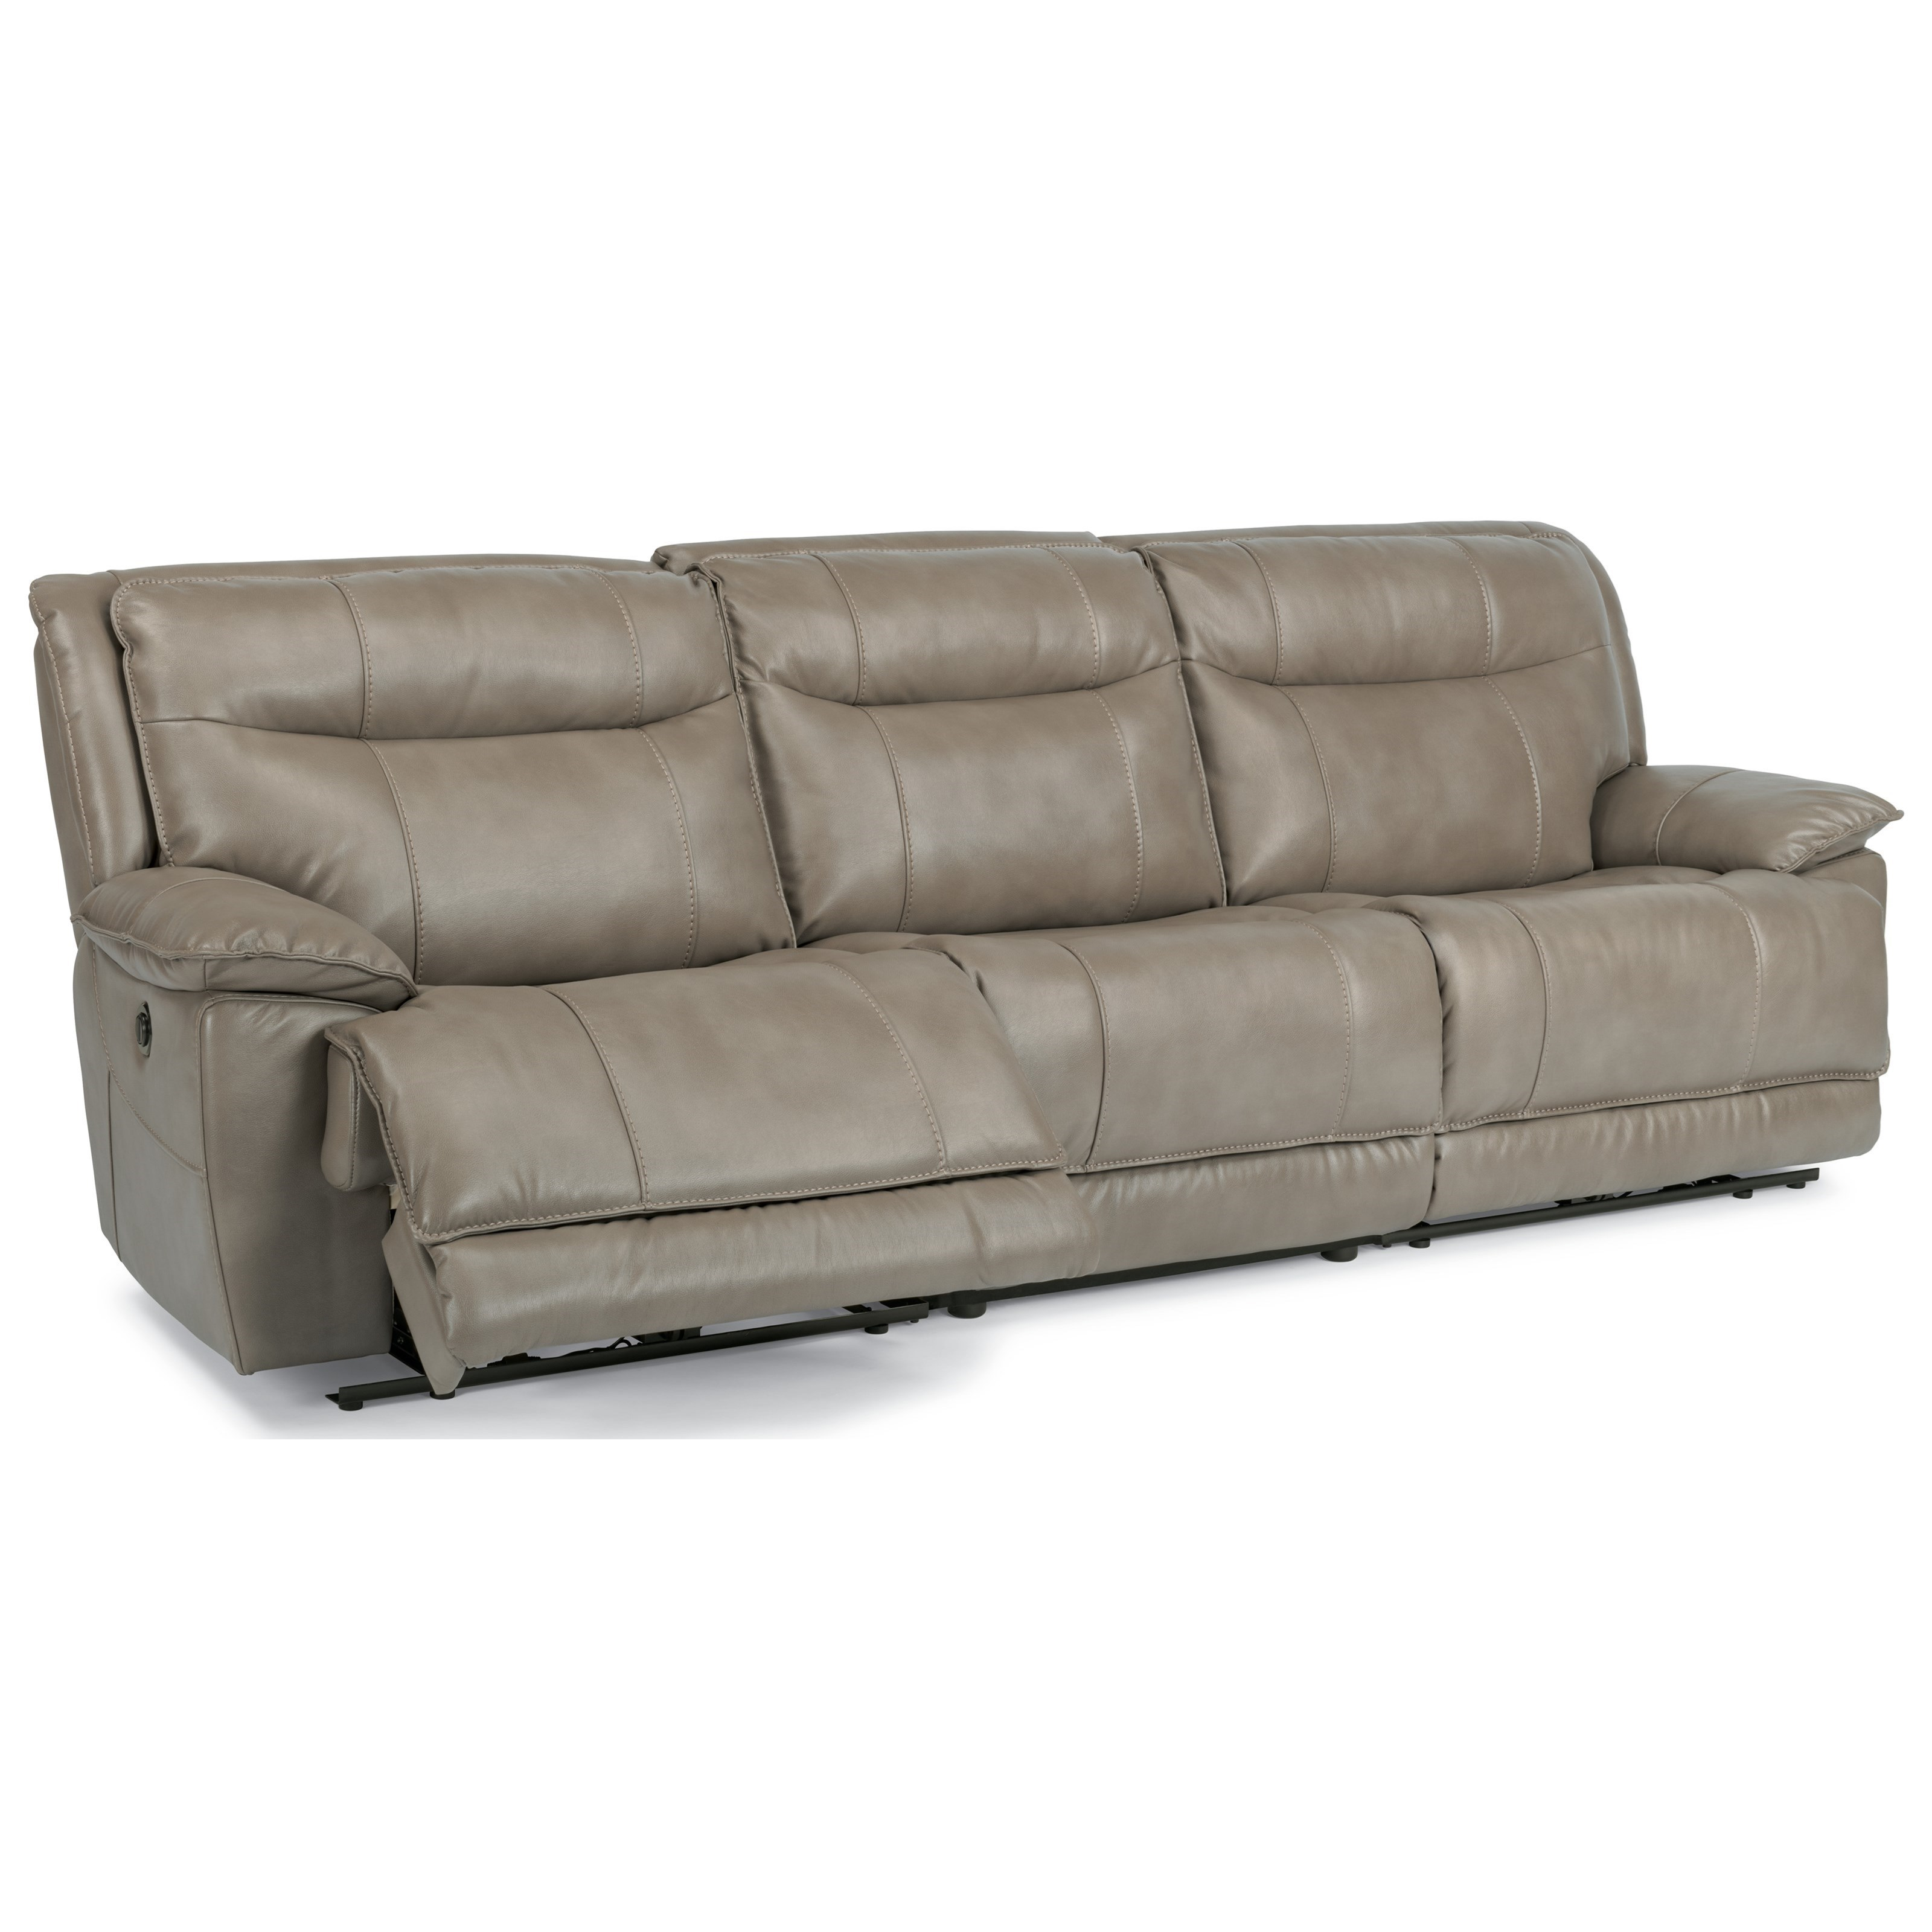 Flexsteel Latitudes-Bliss 3 Pc Power Reclining Sectional Sofa - Item Number: 1730-57P+59P+58P